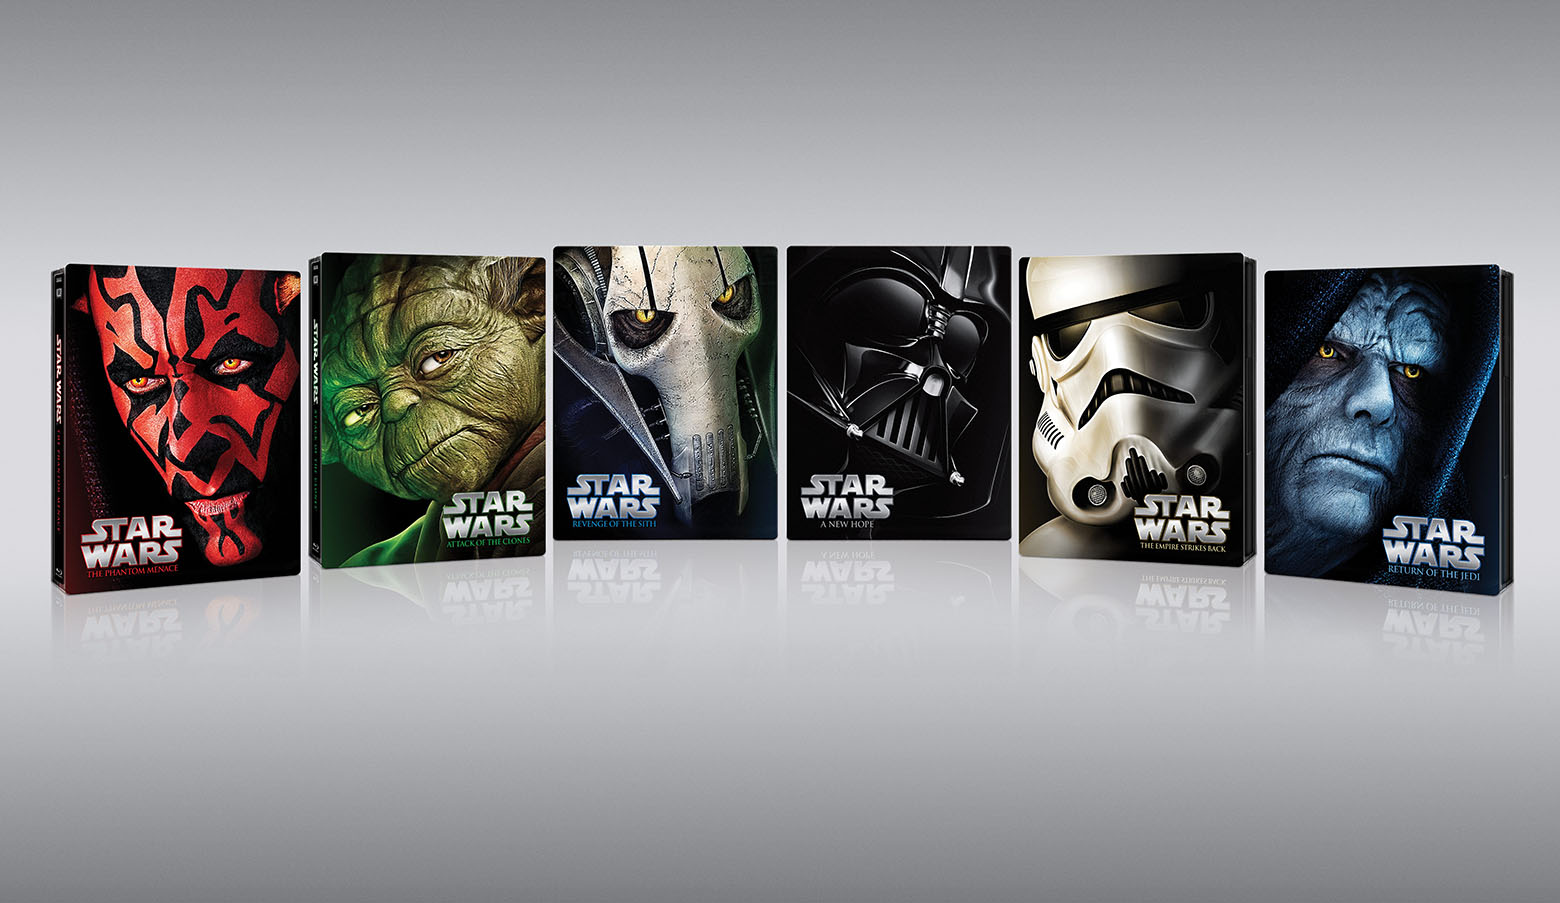 The Dark Side is (a little too) strong with these Star Wars saga limited edition Blu-rays